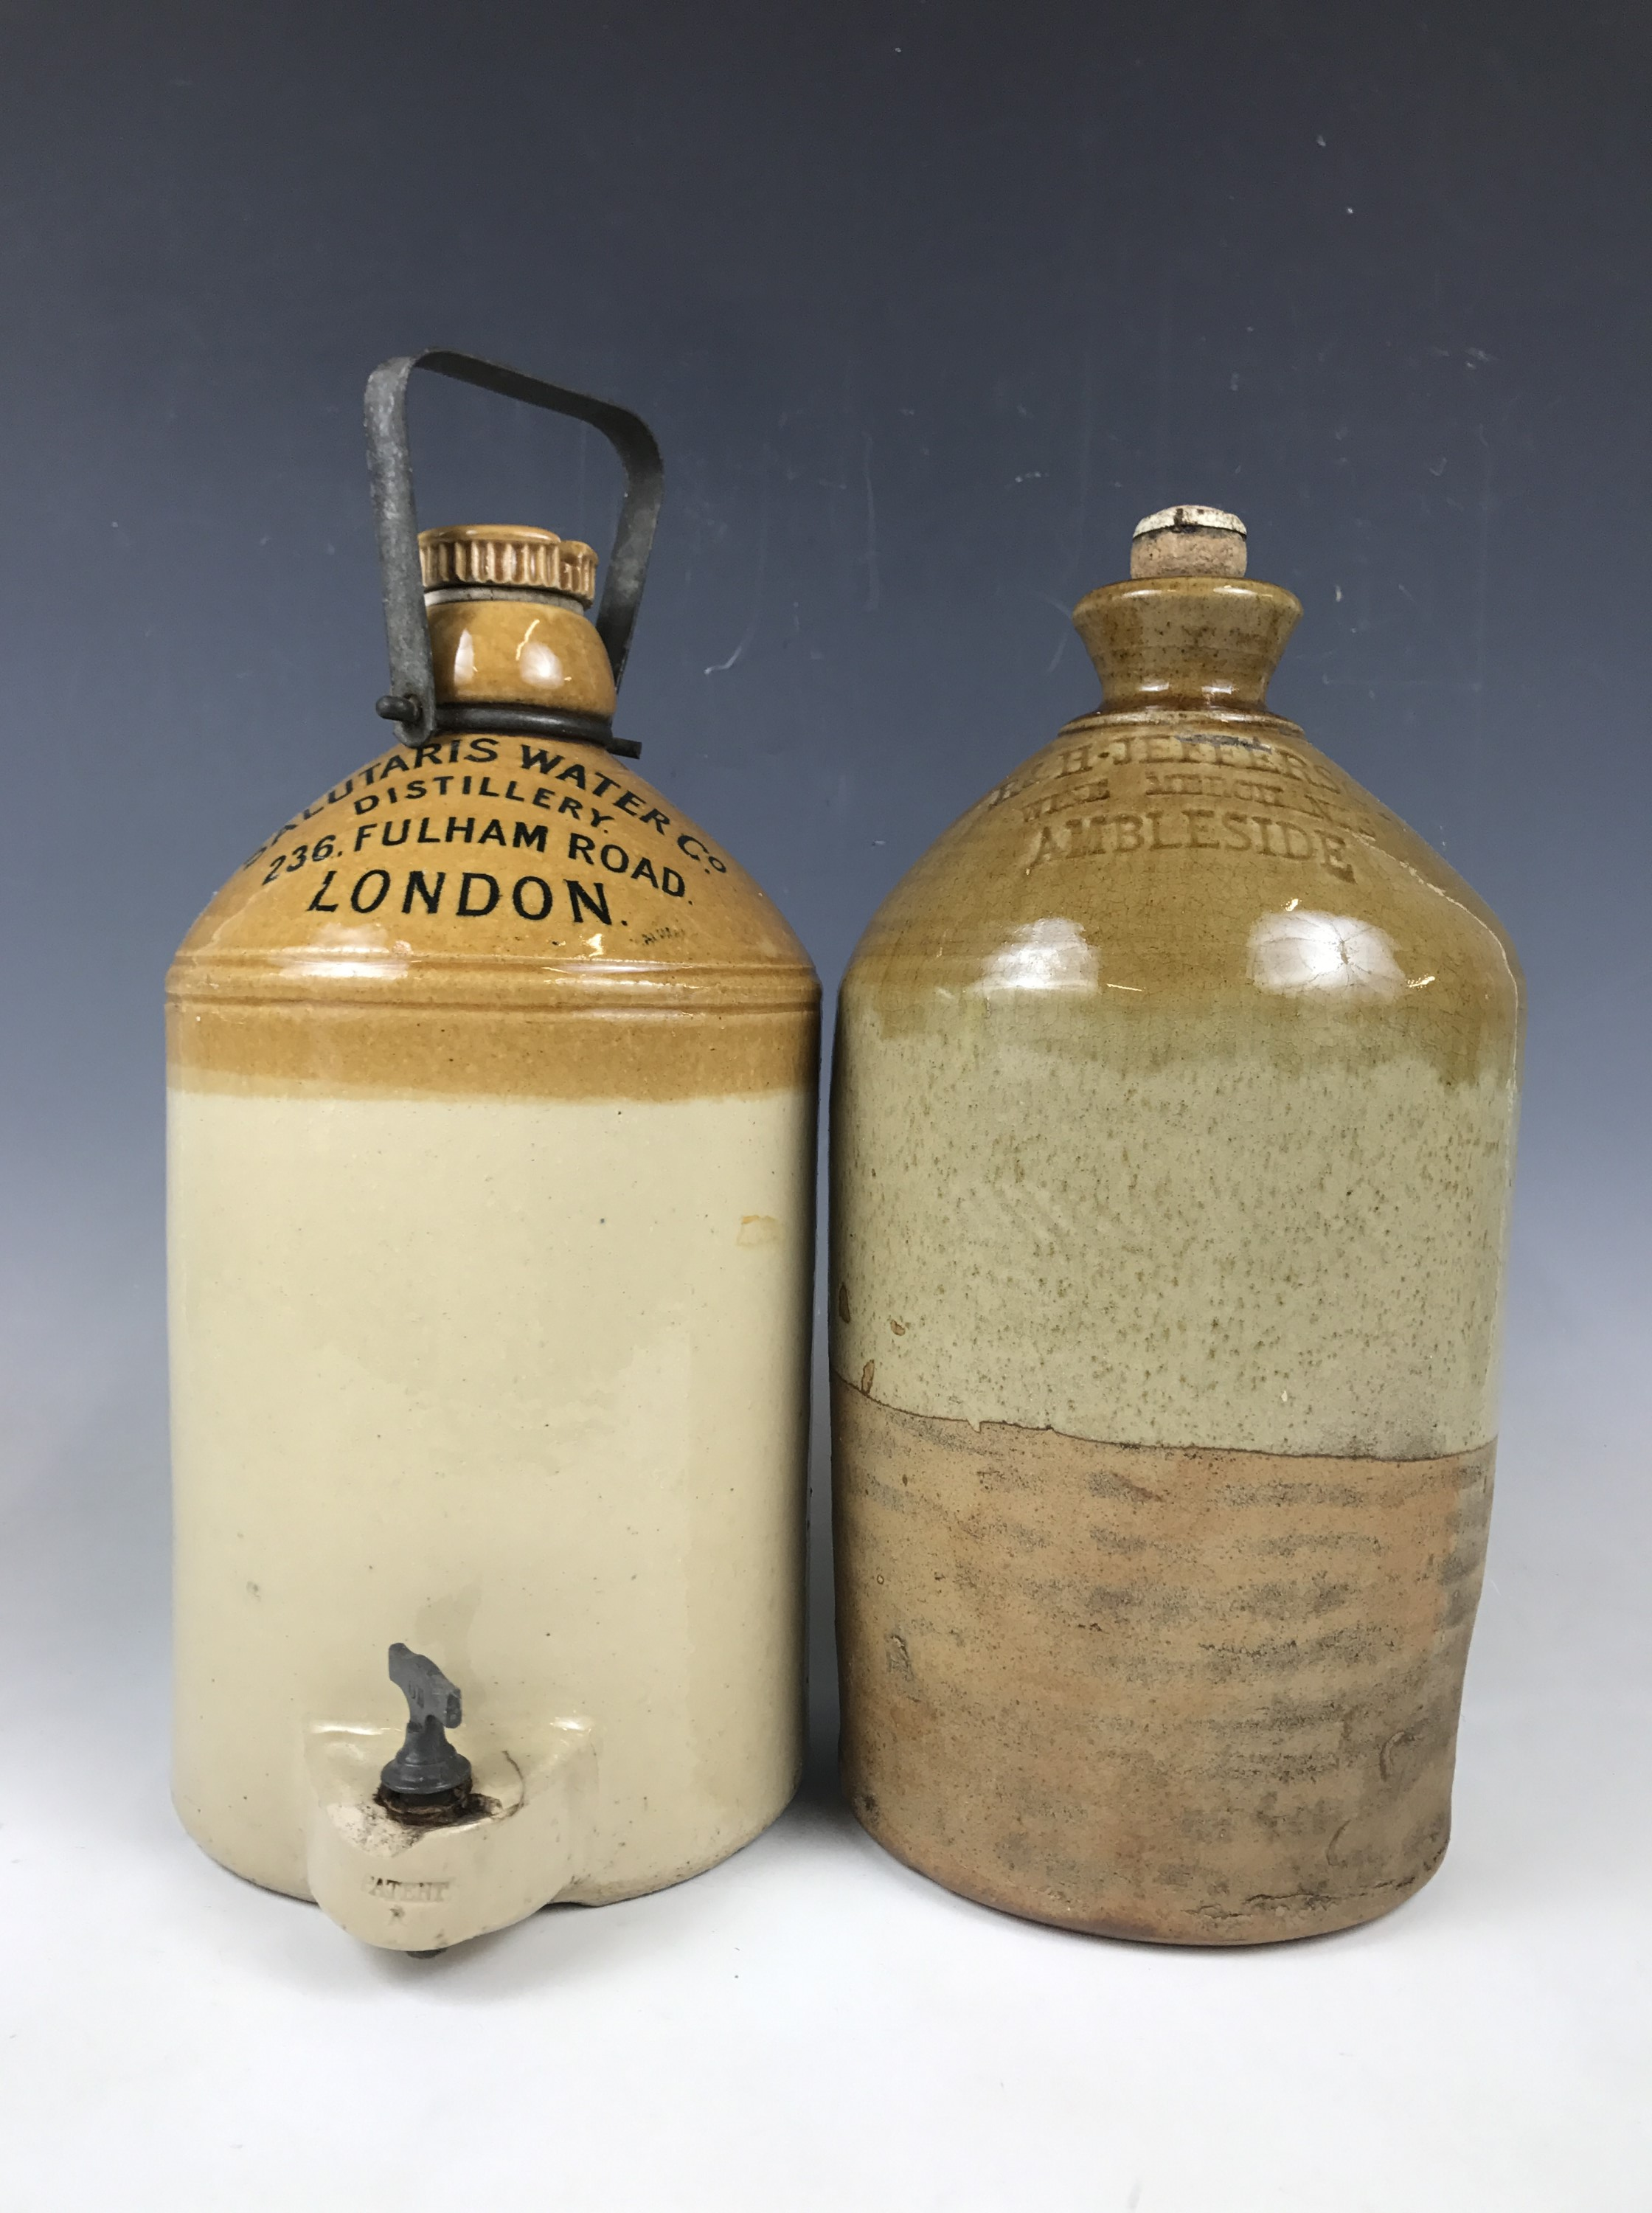 """Lot 58 - A stoneware flagon with tap, printed """"Salutaris Water Co Distillery, 236 Fulham Road, London"""","""